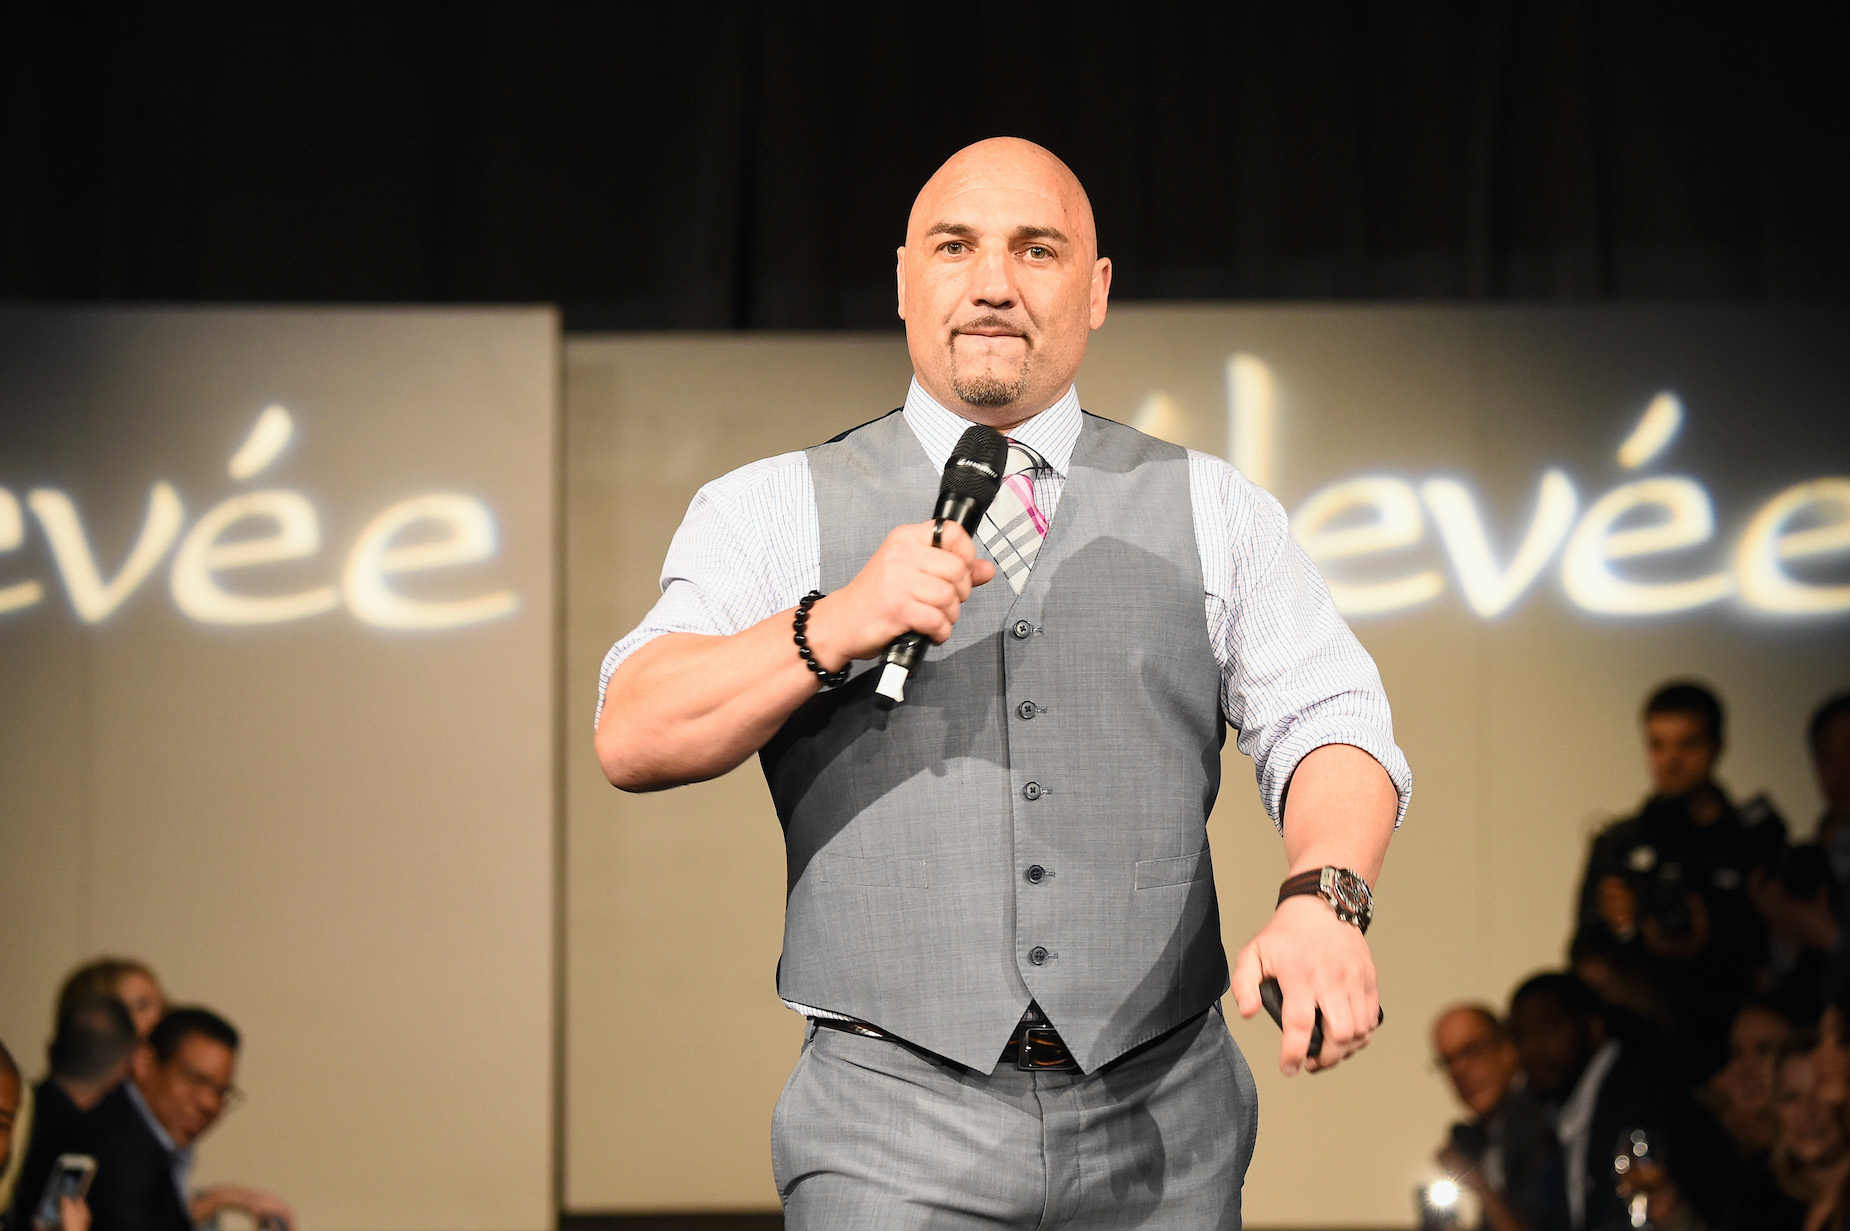 NFL Insider Jay Glazer Had an Eventful Sunday on Twitter and Even Took a Shot at Some Angry Soccer Fans